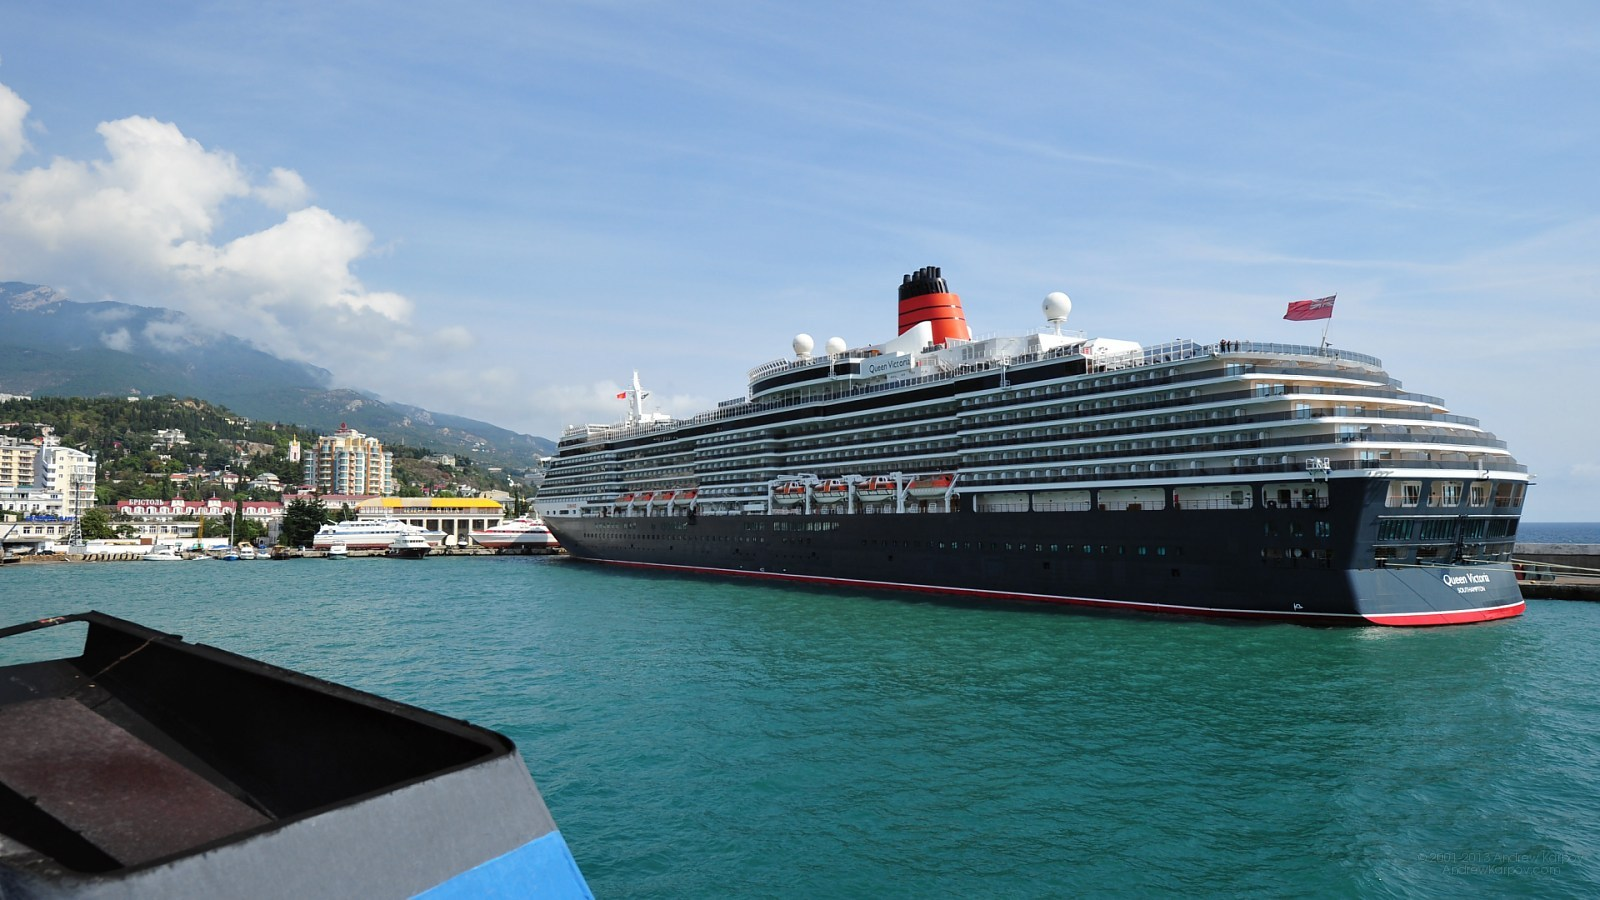 image wallpaper 1600 900 pictures wallpaper A cruise ship free 1600x900